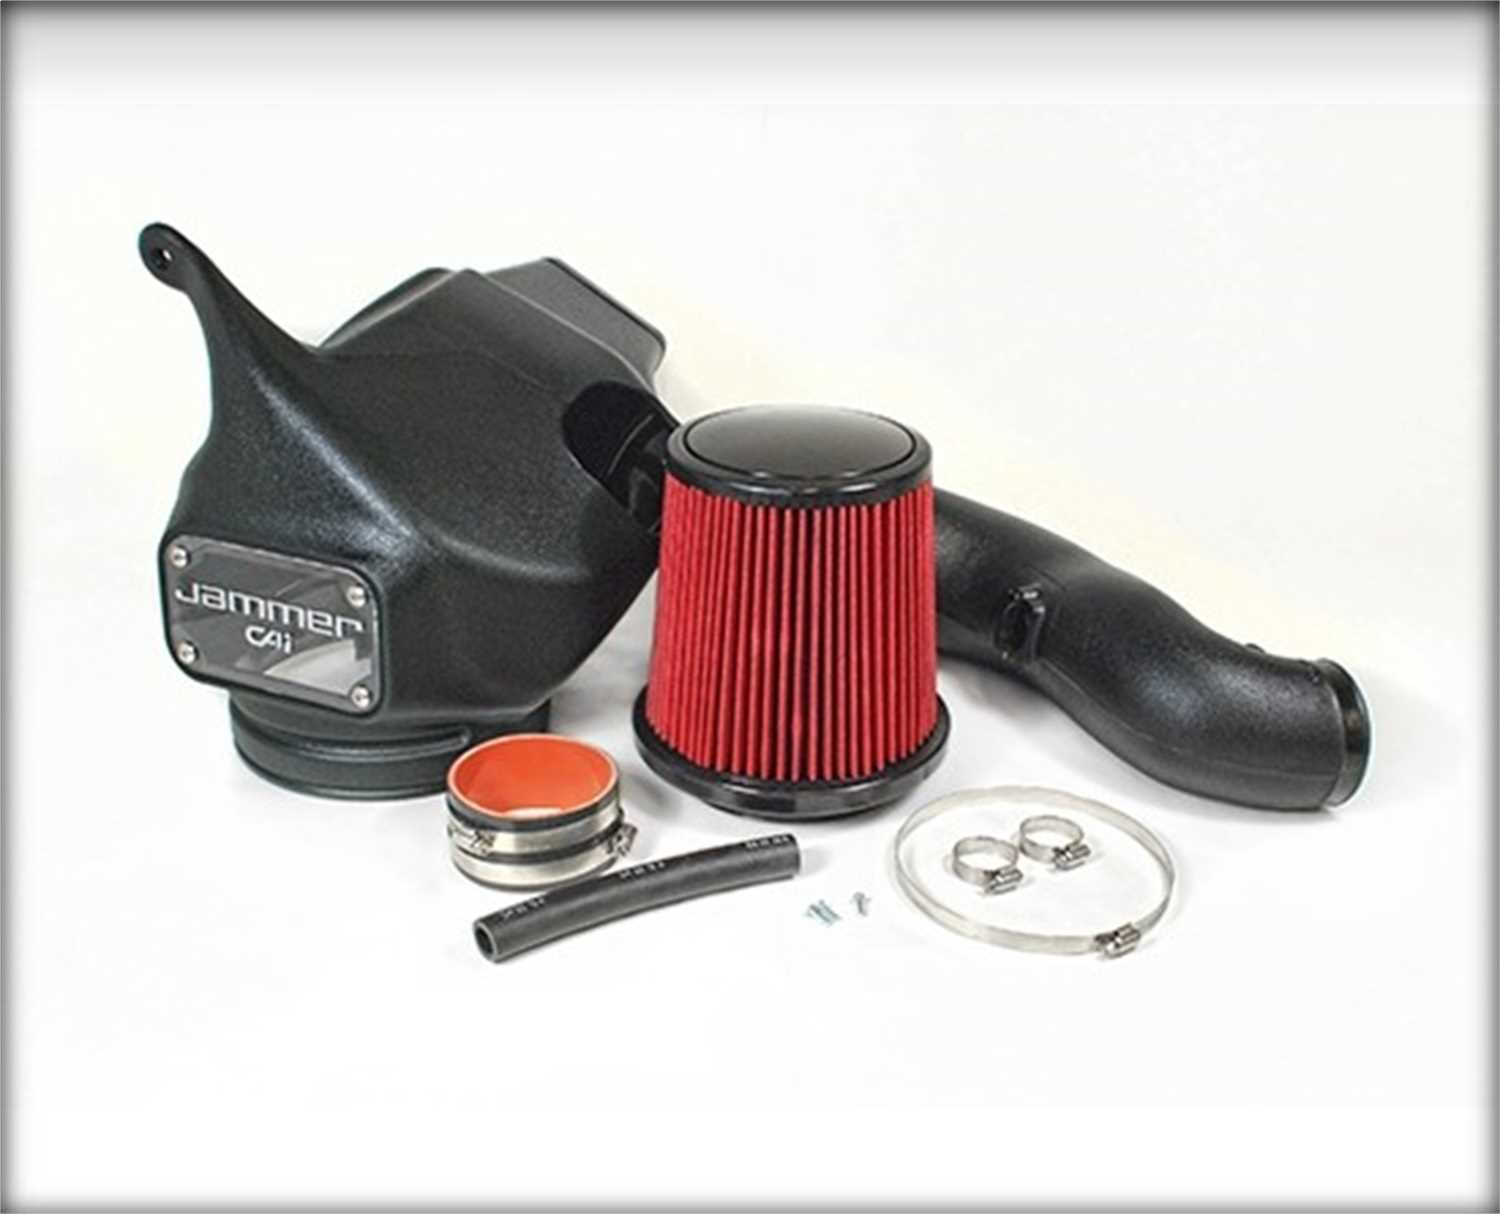 38255-1 Edge Products Jammer Cold Air Intake